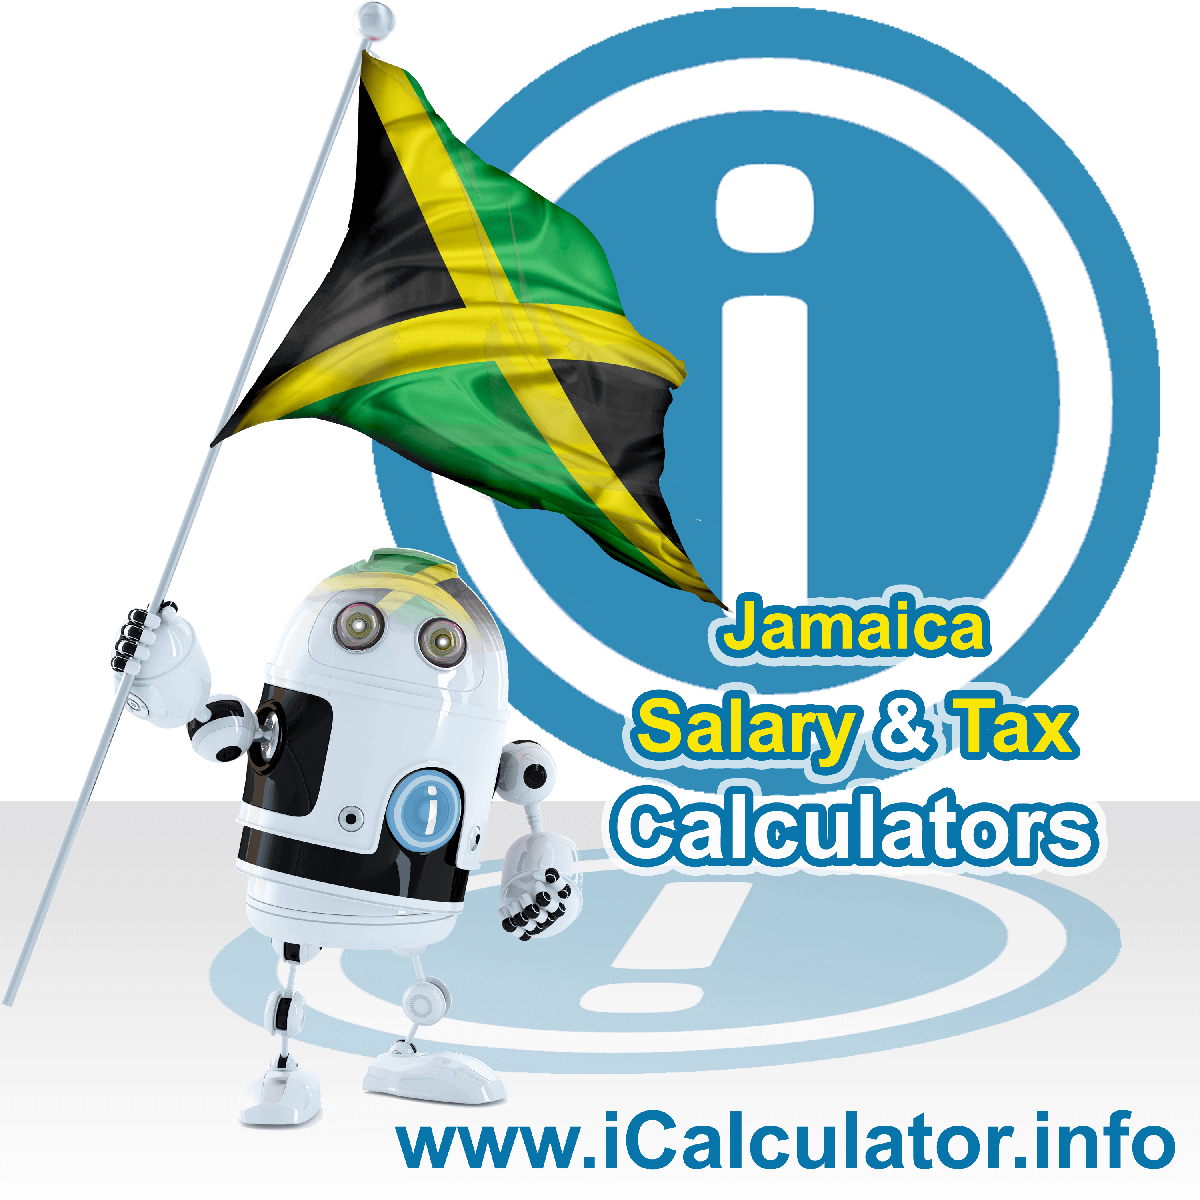 Jamaica Wage Calculator. This image shows the Jamaica flag and information relating to the tax formula for the Jamaica Tax Calculator